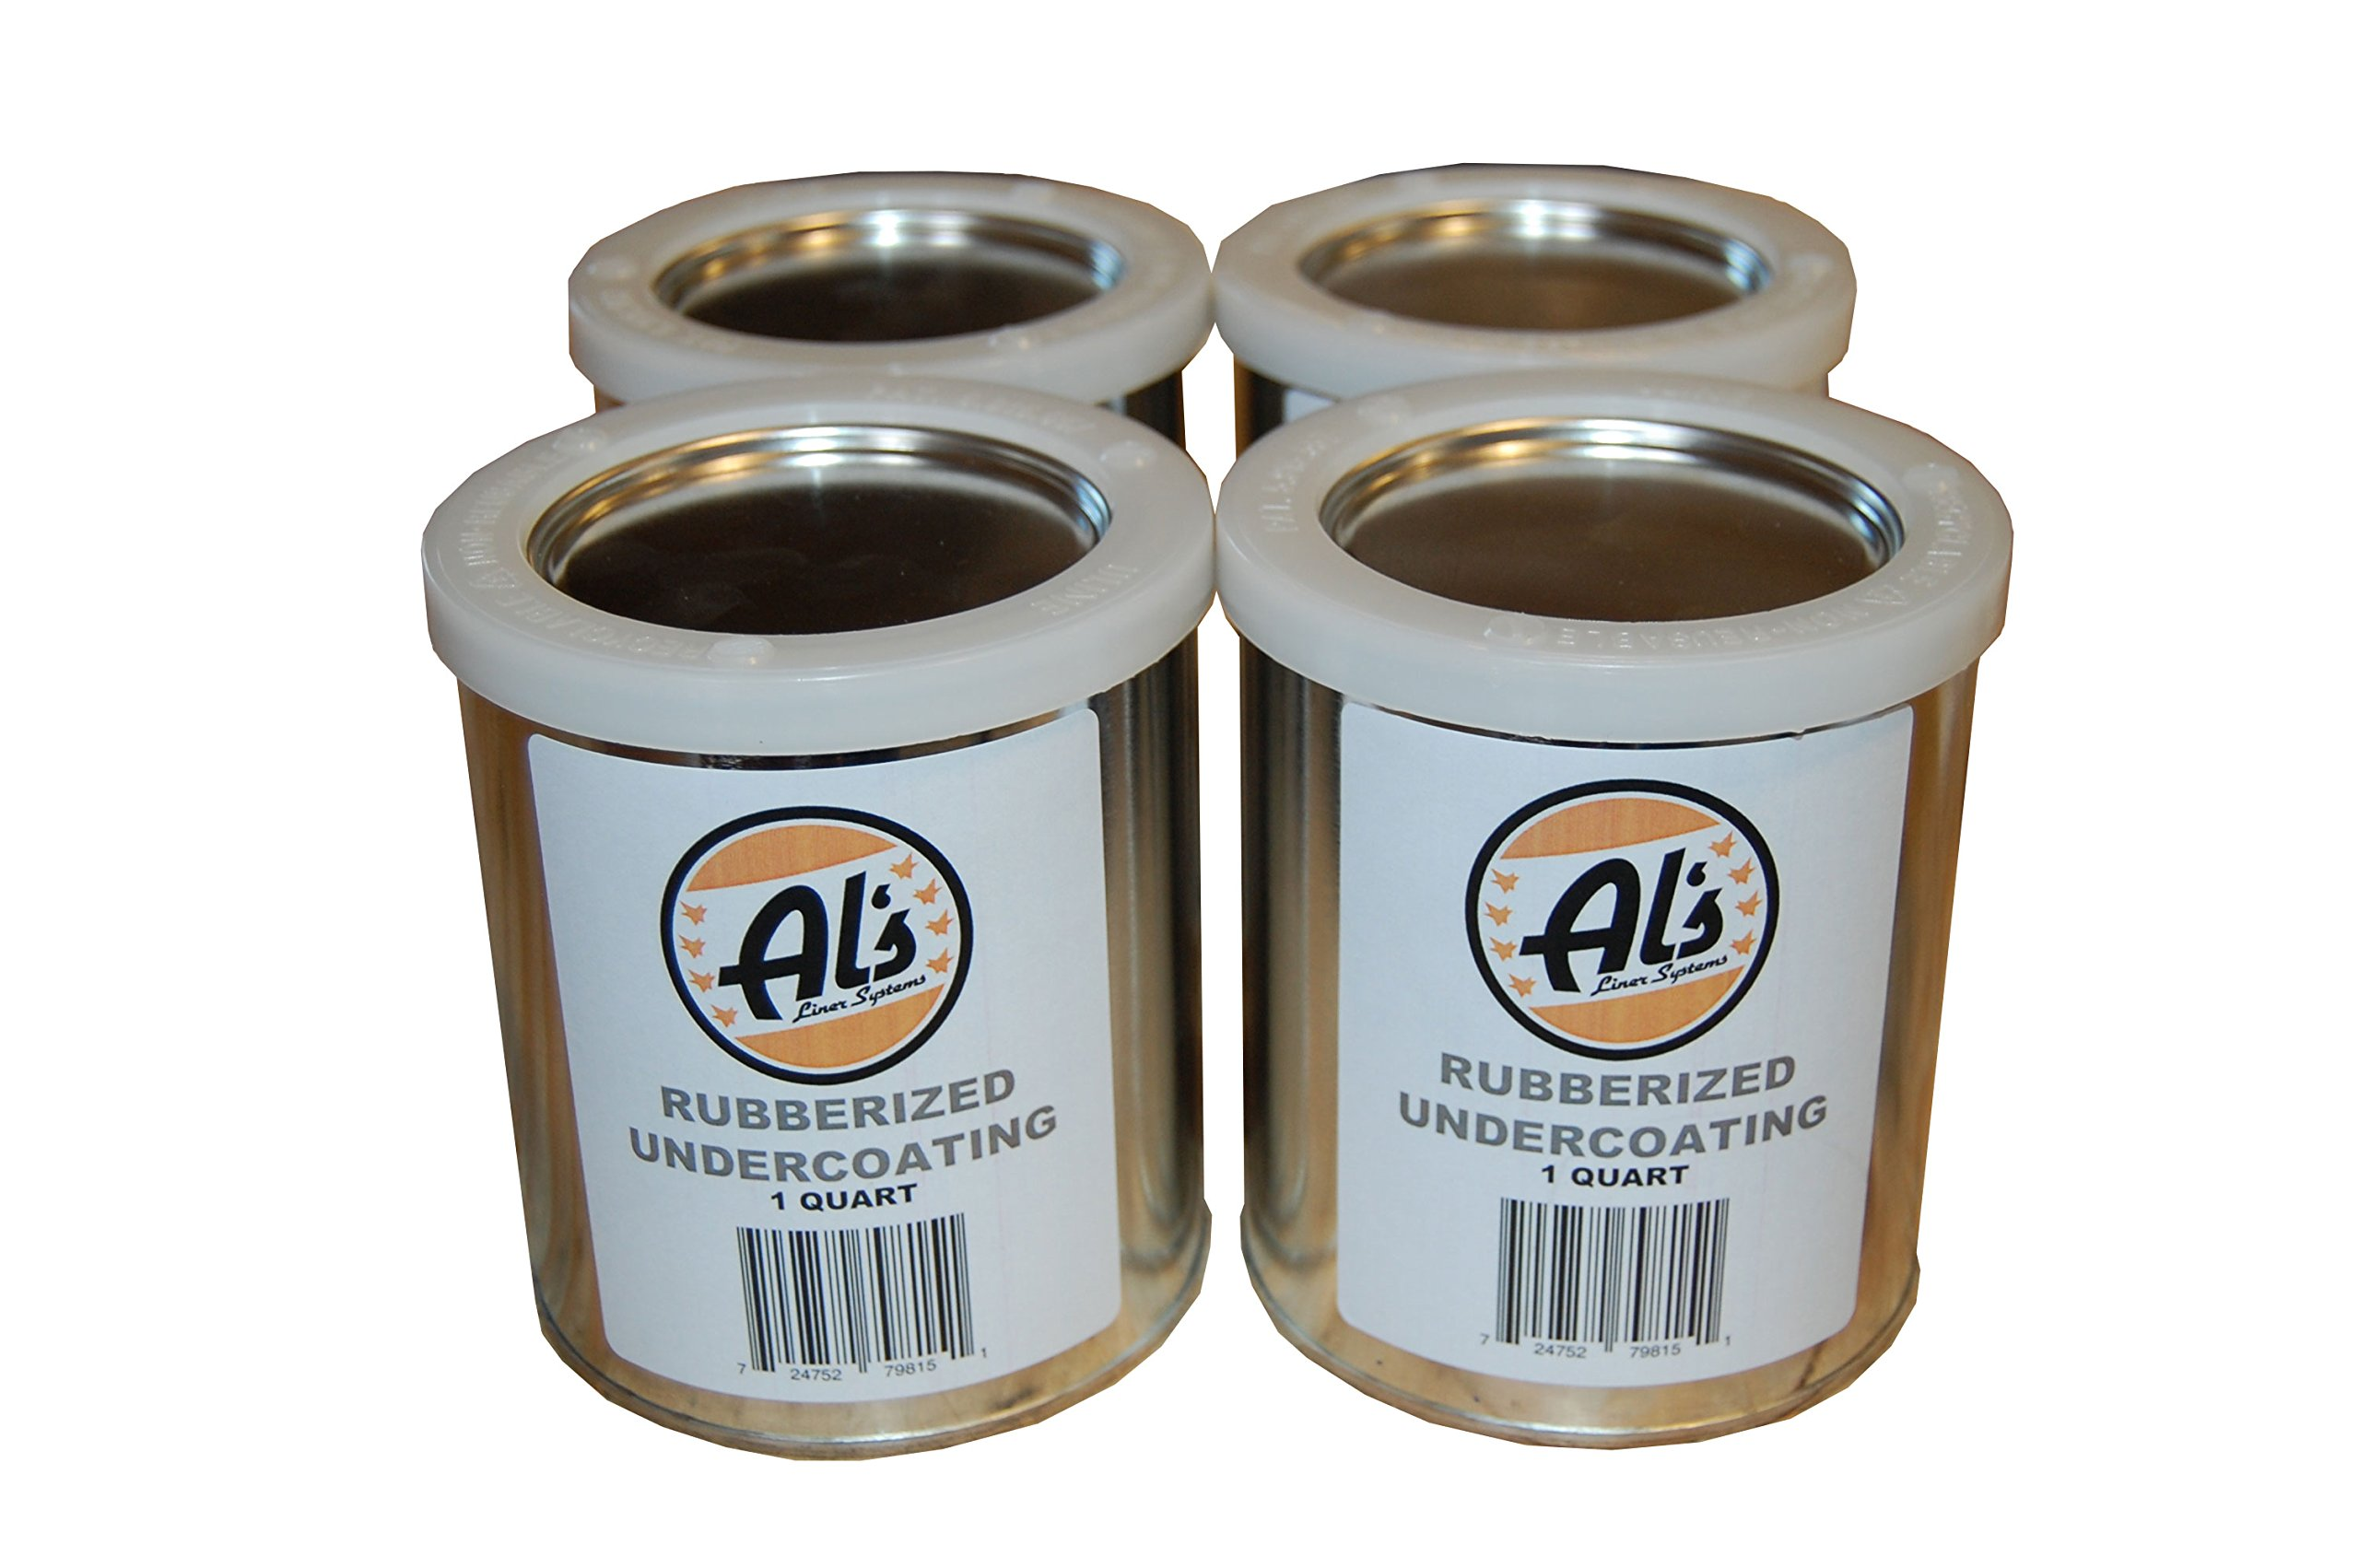 Al's Liner ALS-UCR1G ALS-UCR Premium DIY Rubberized Undercoating, Gallon, Black, 128. Fluid_Ounces by Al's Liner (Image #1)